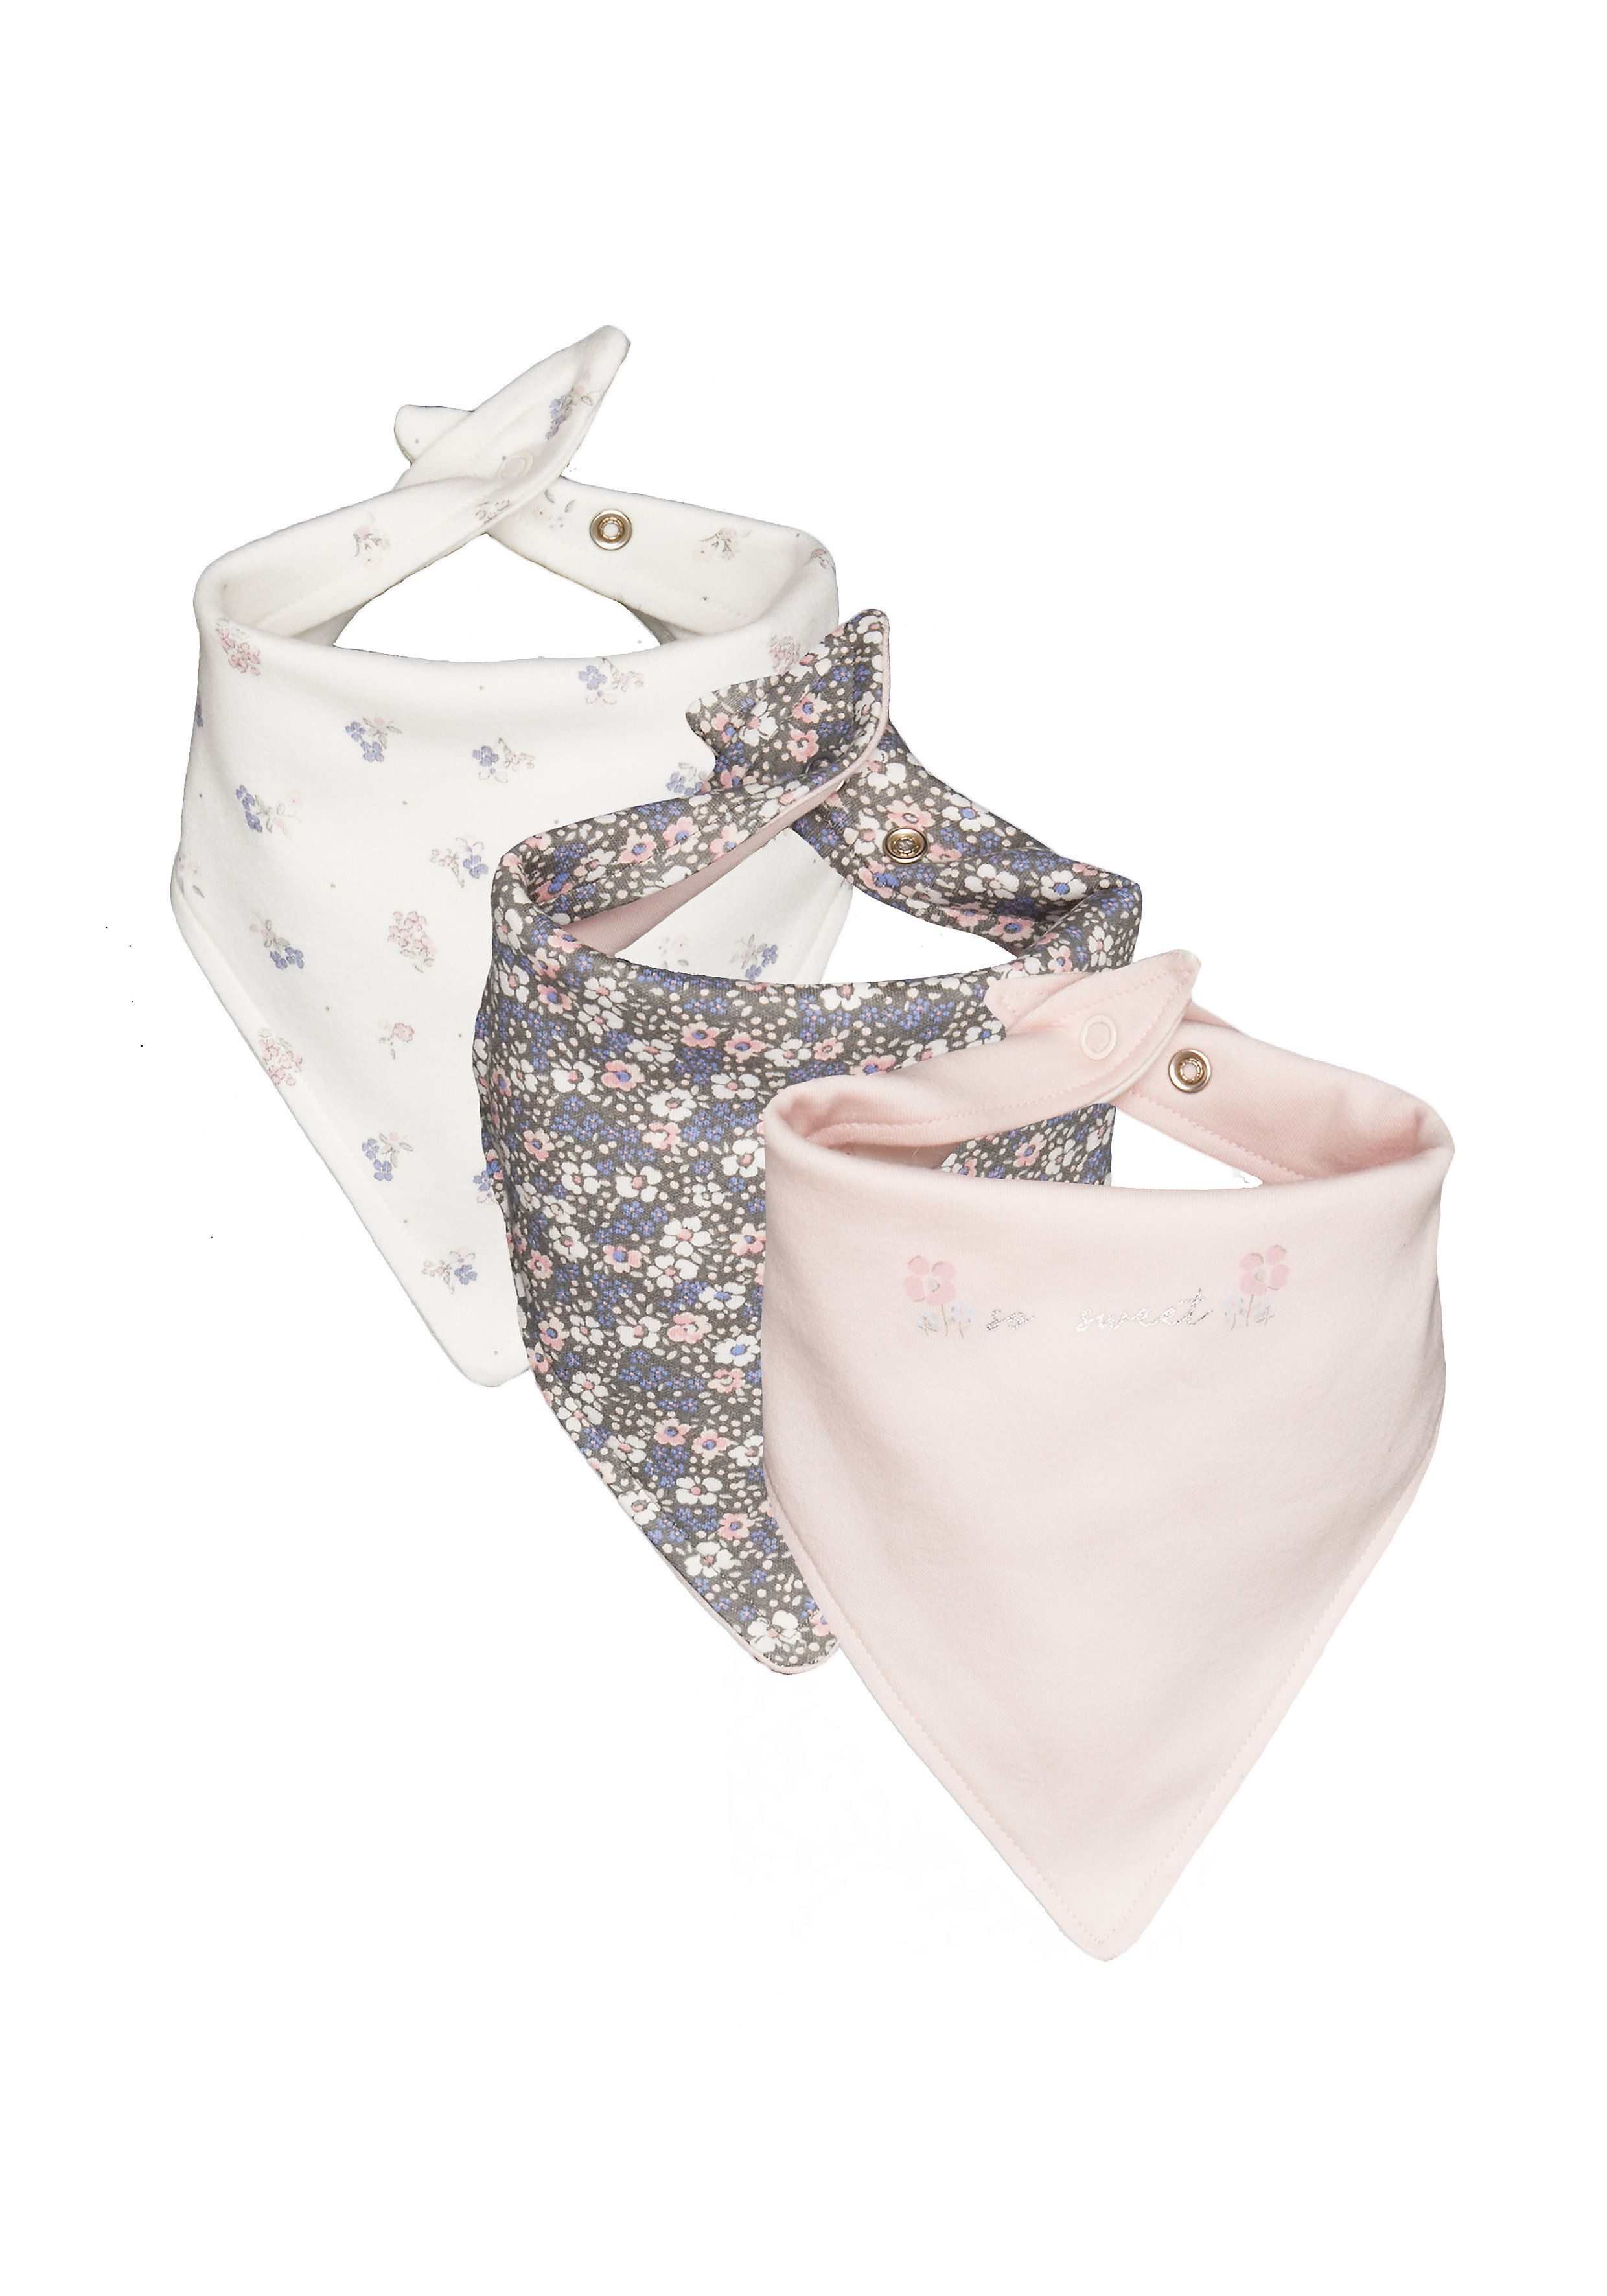 Mothercare | White, Grey and Pink Printed Bib - Pack of 3